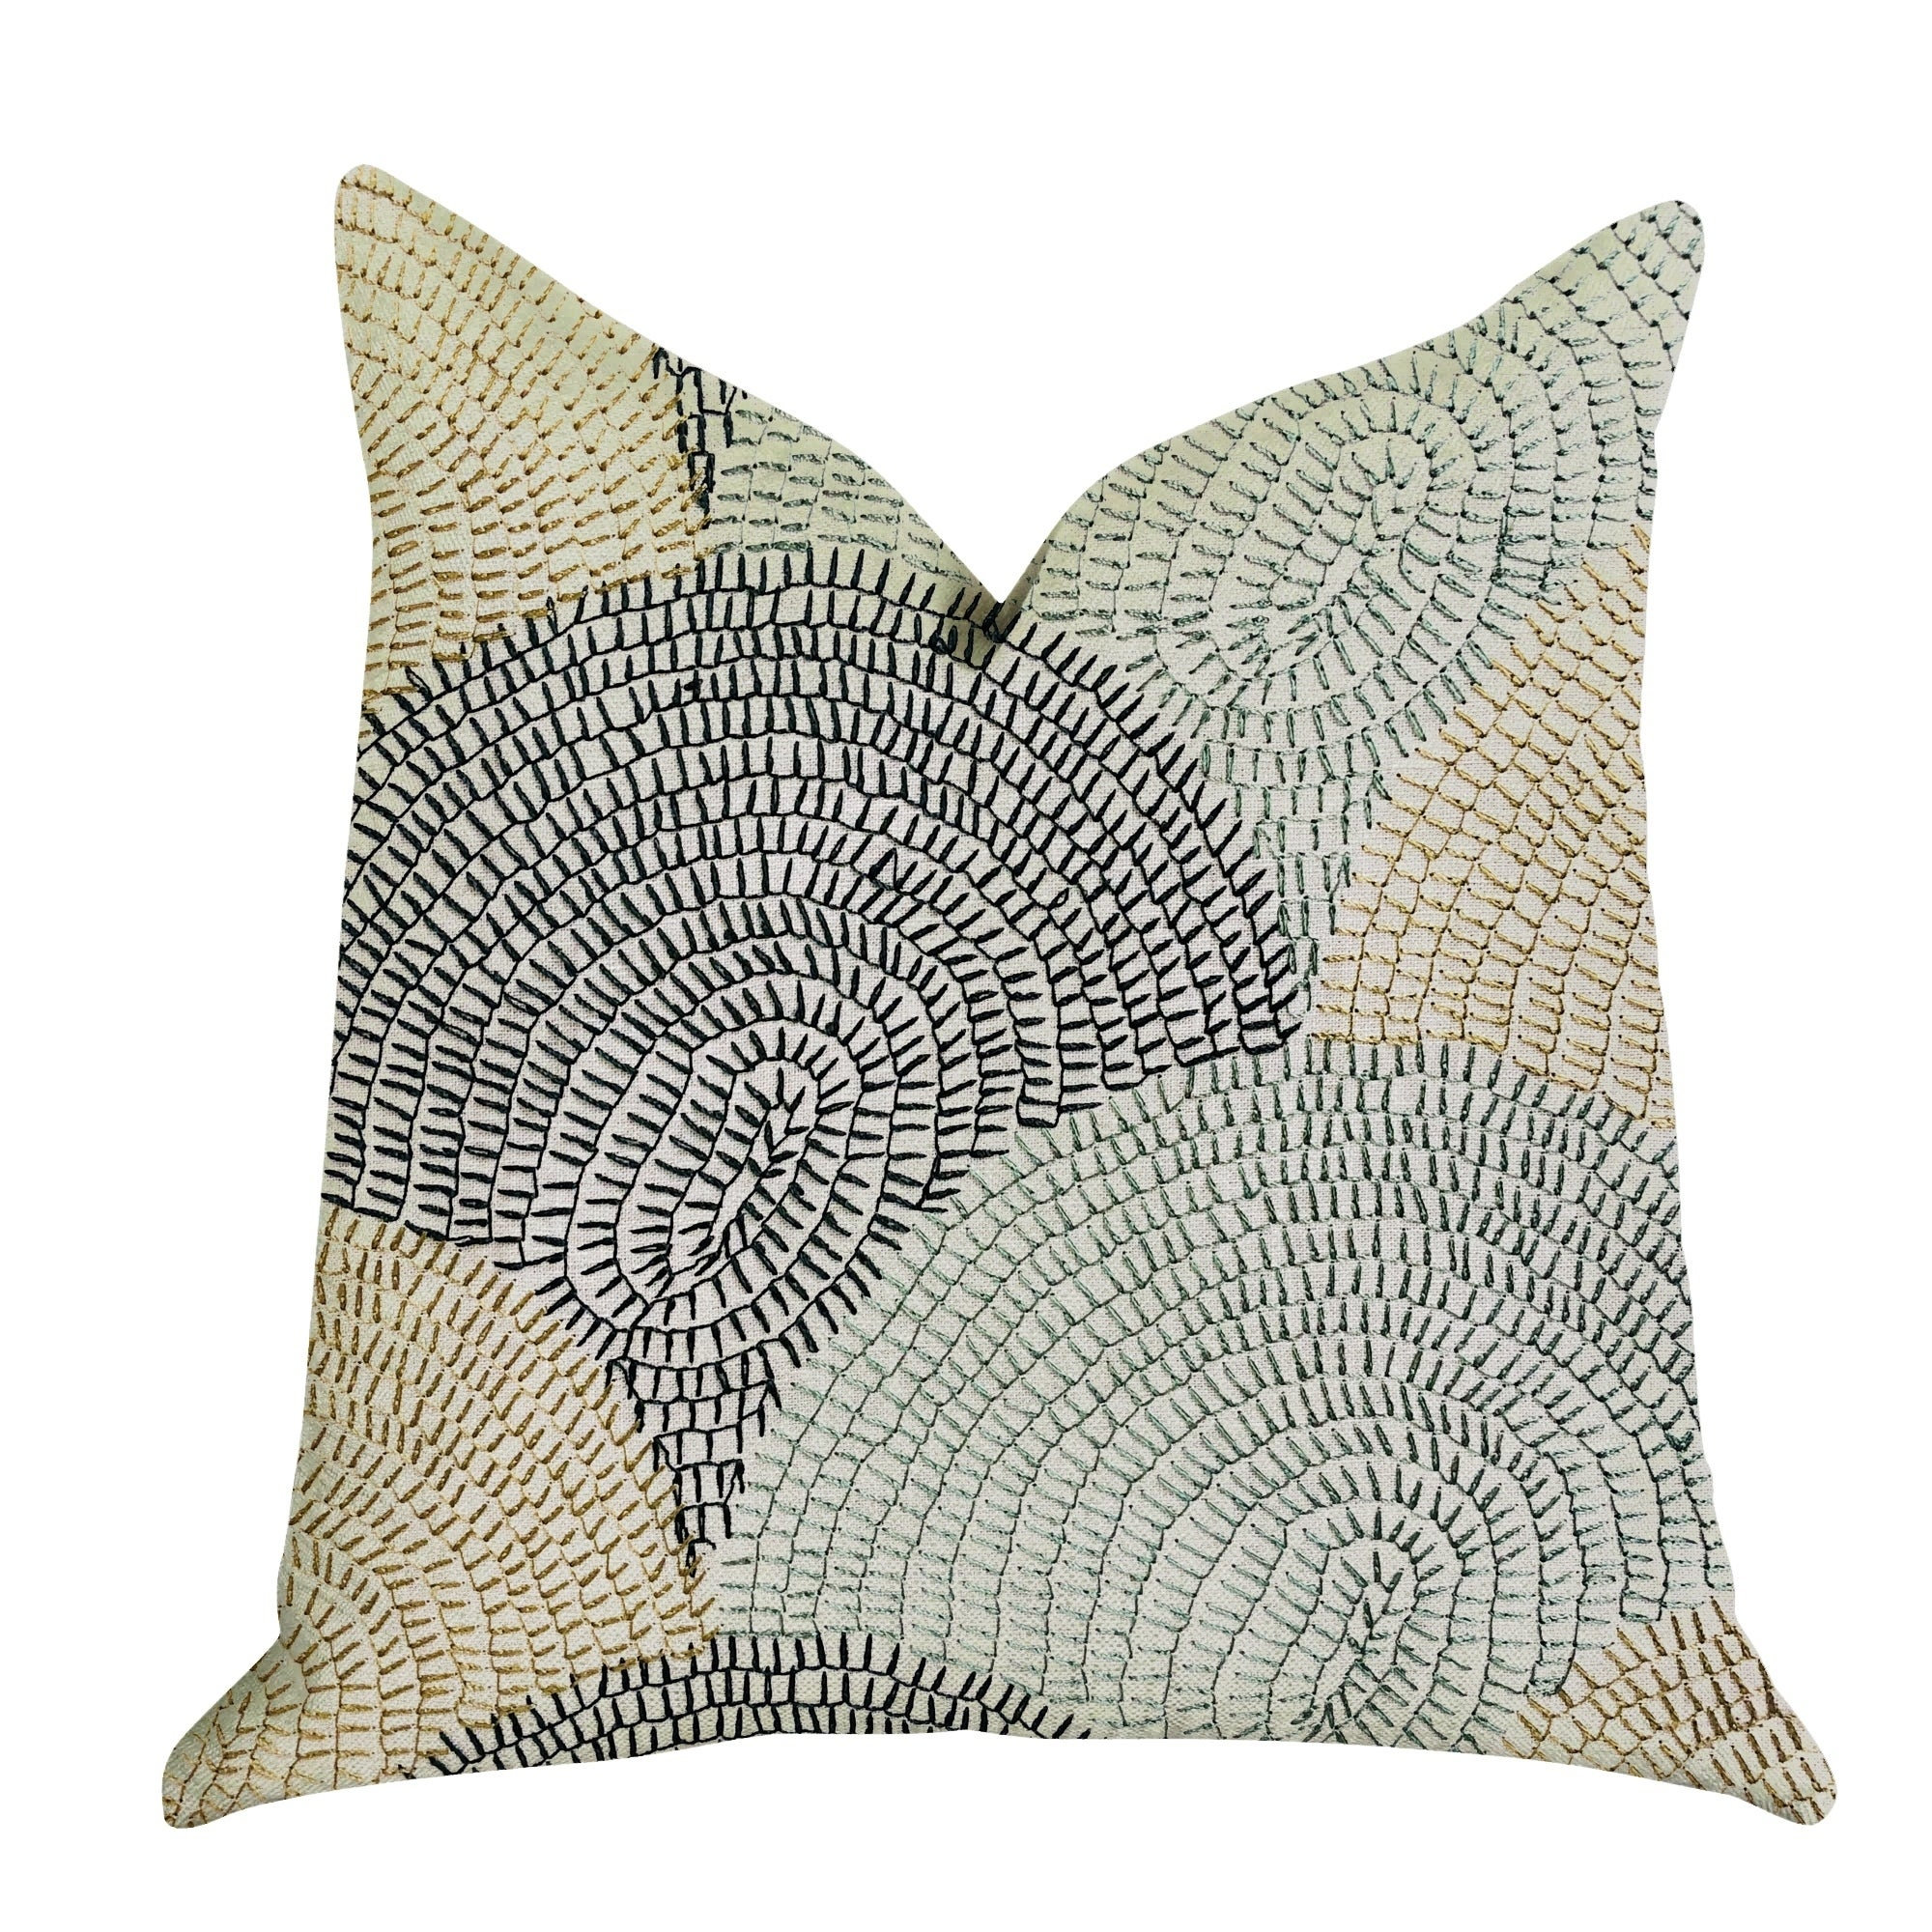 Plutus Marquee Lagoon Multiple Color Luxury Decorative Throw Pillow (Rectangle - double sided 12 x 25 - Medium)